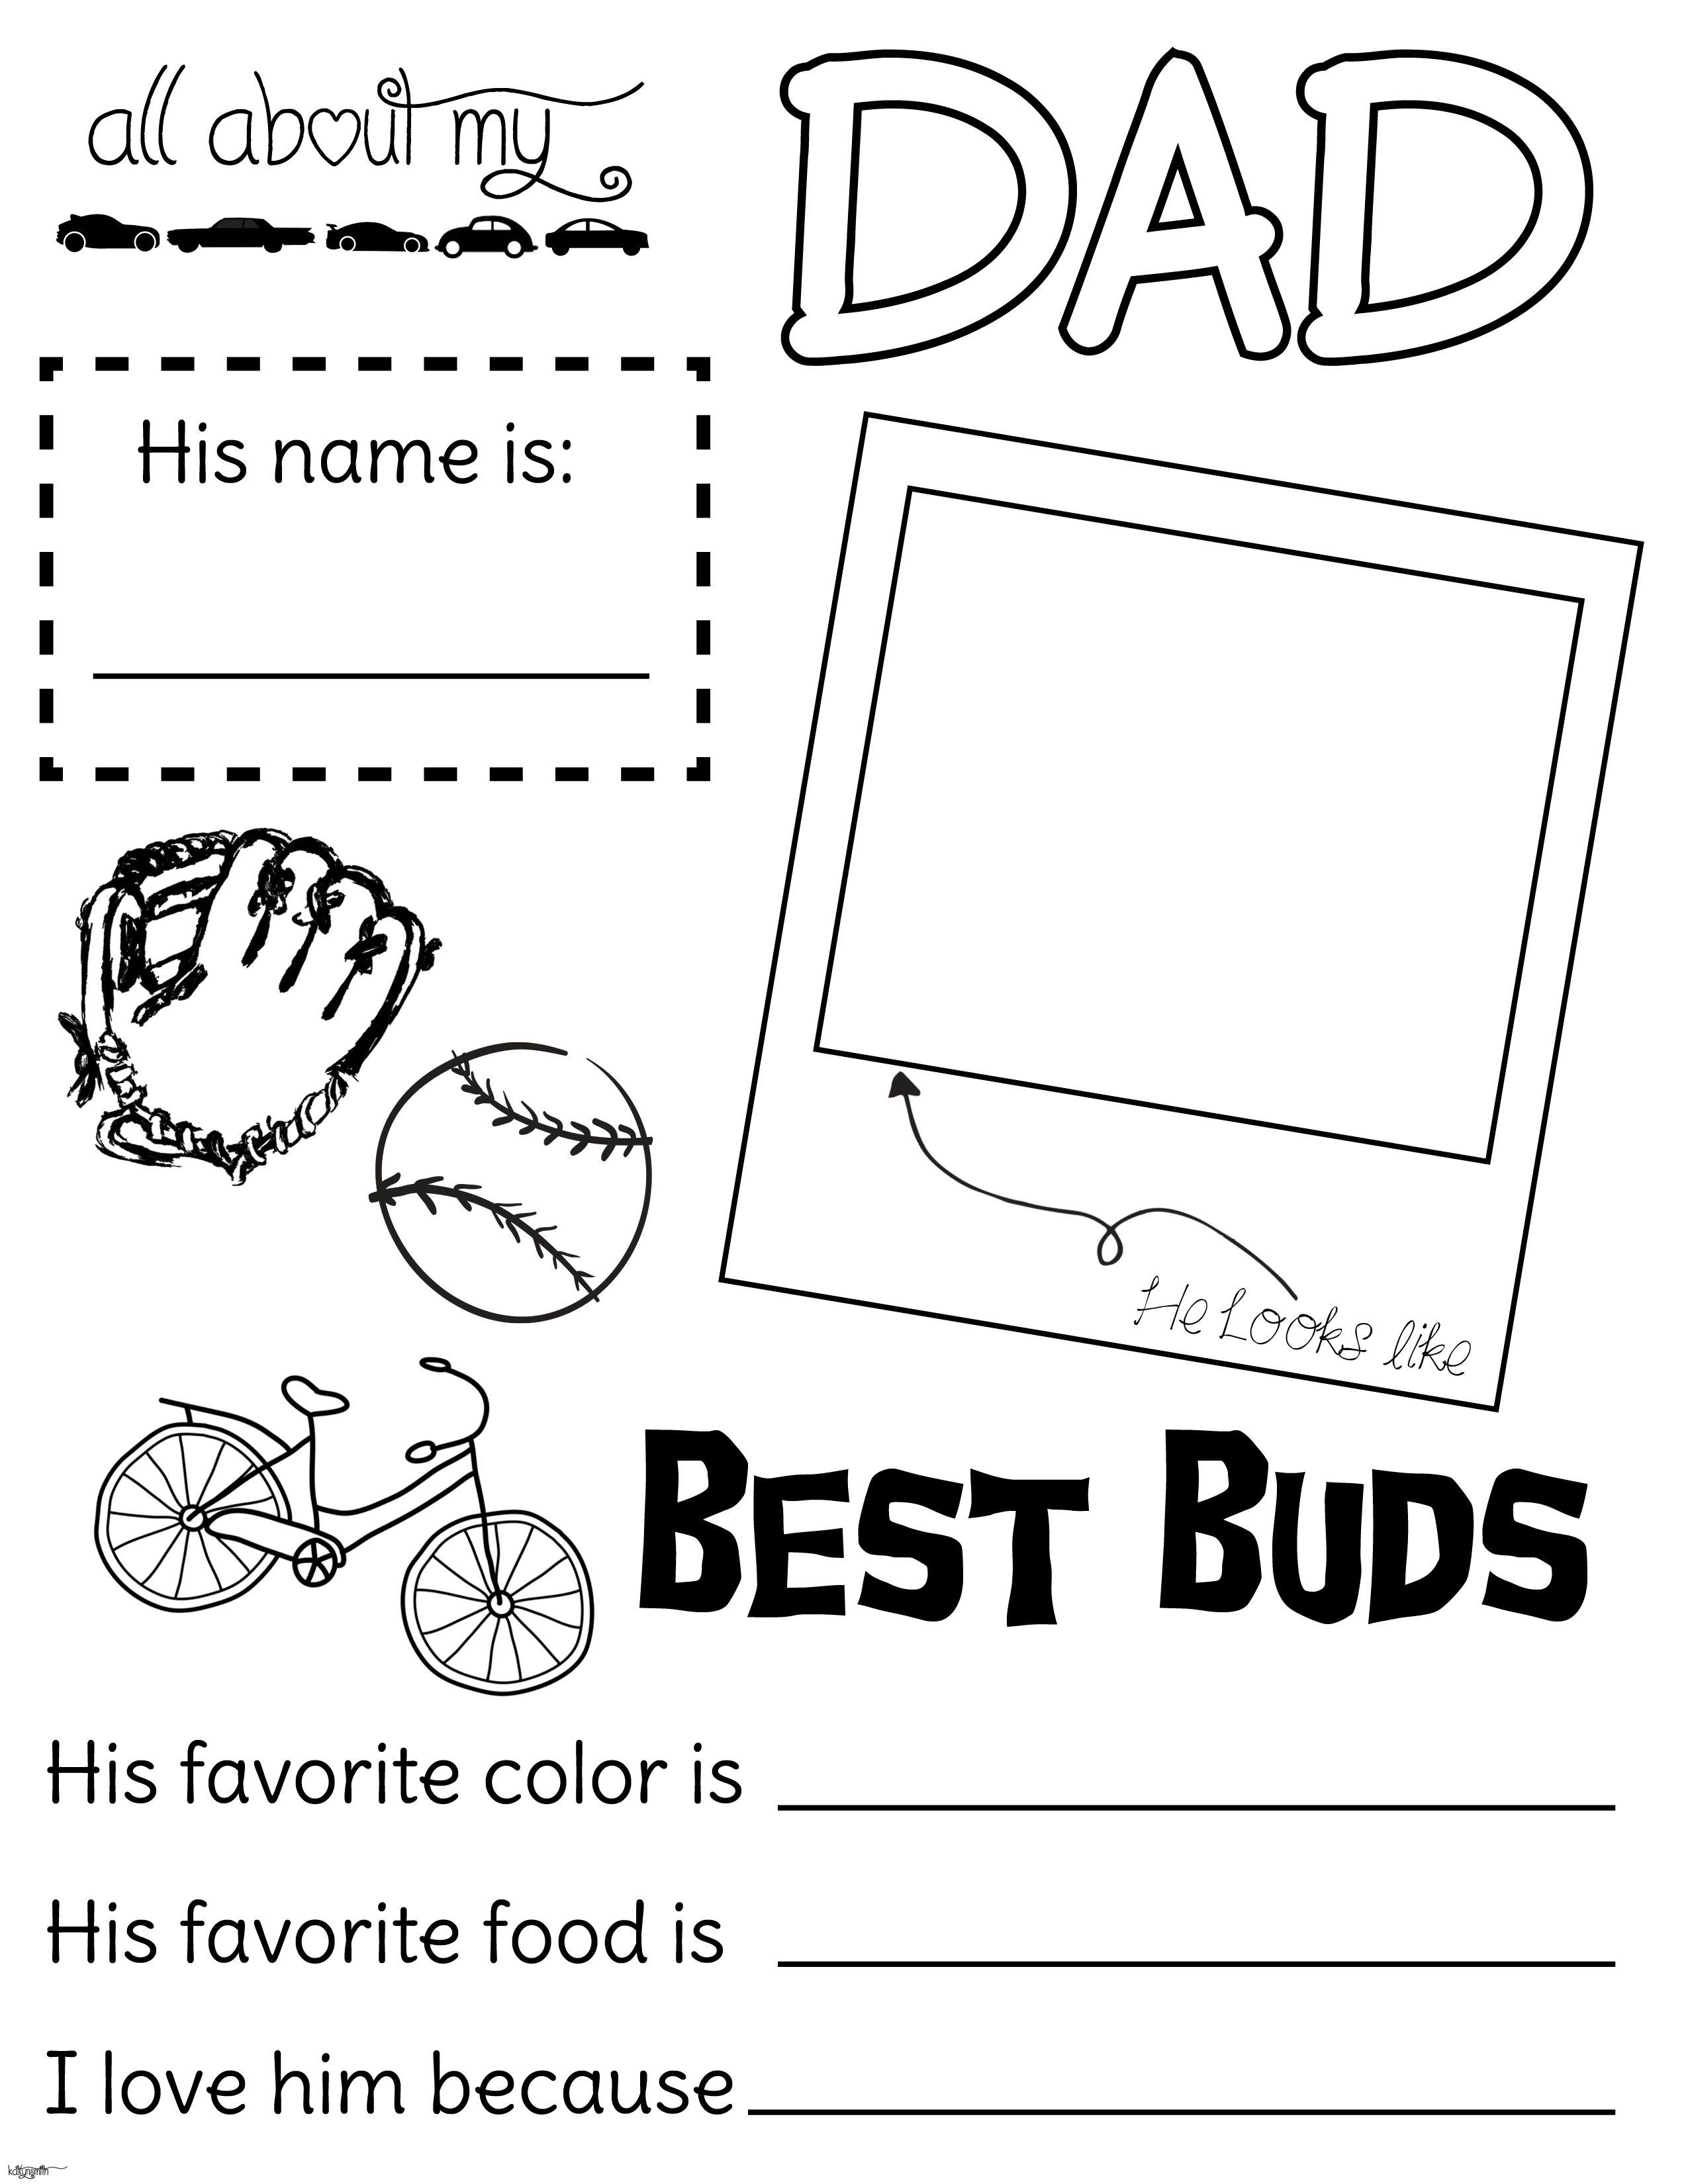 All about my dad. Lds clipart fathers day